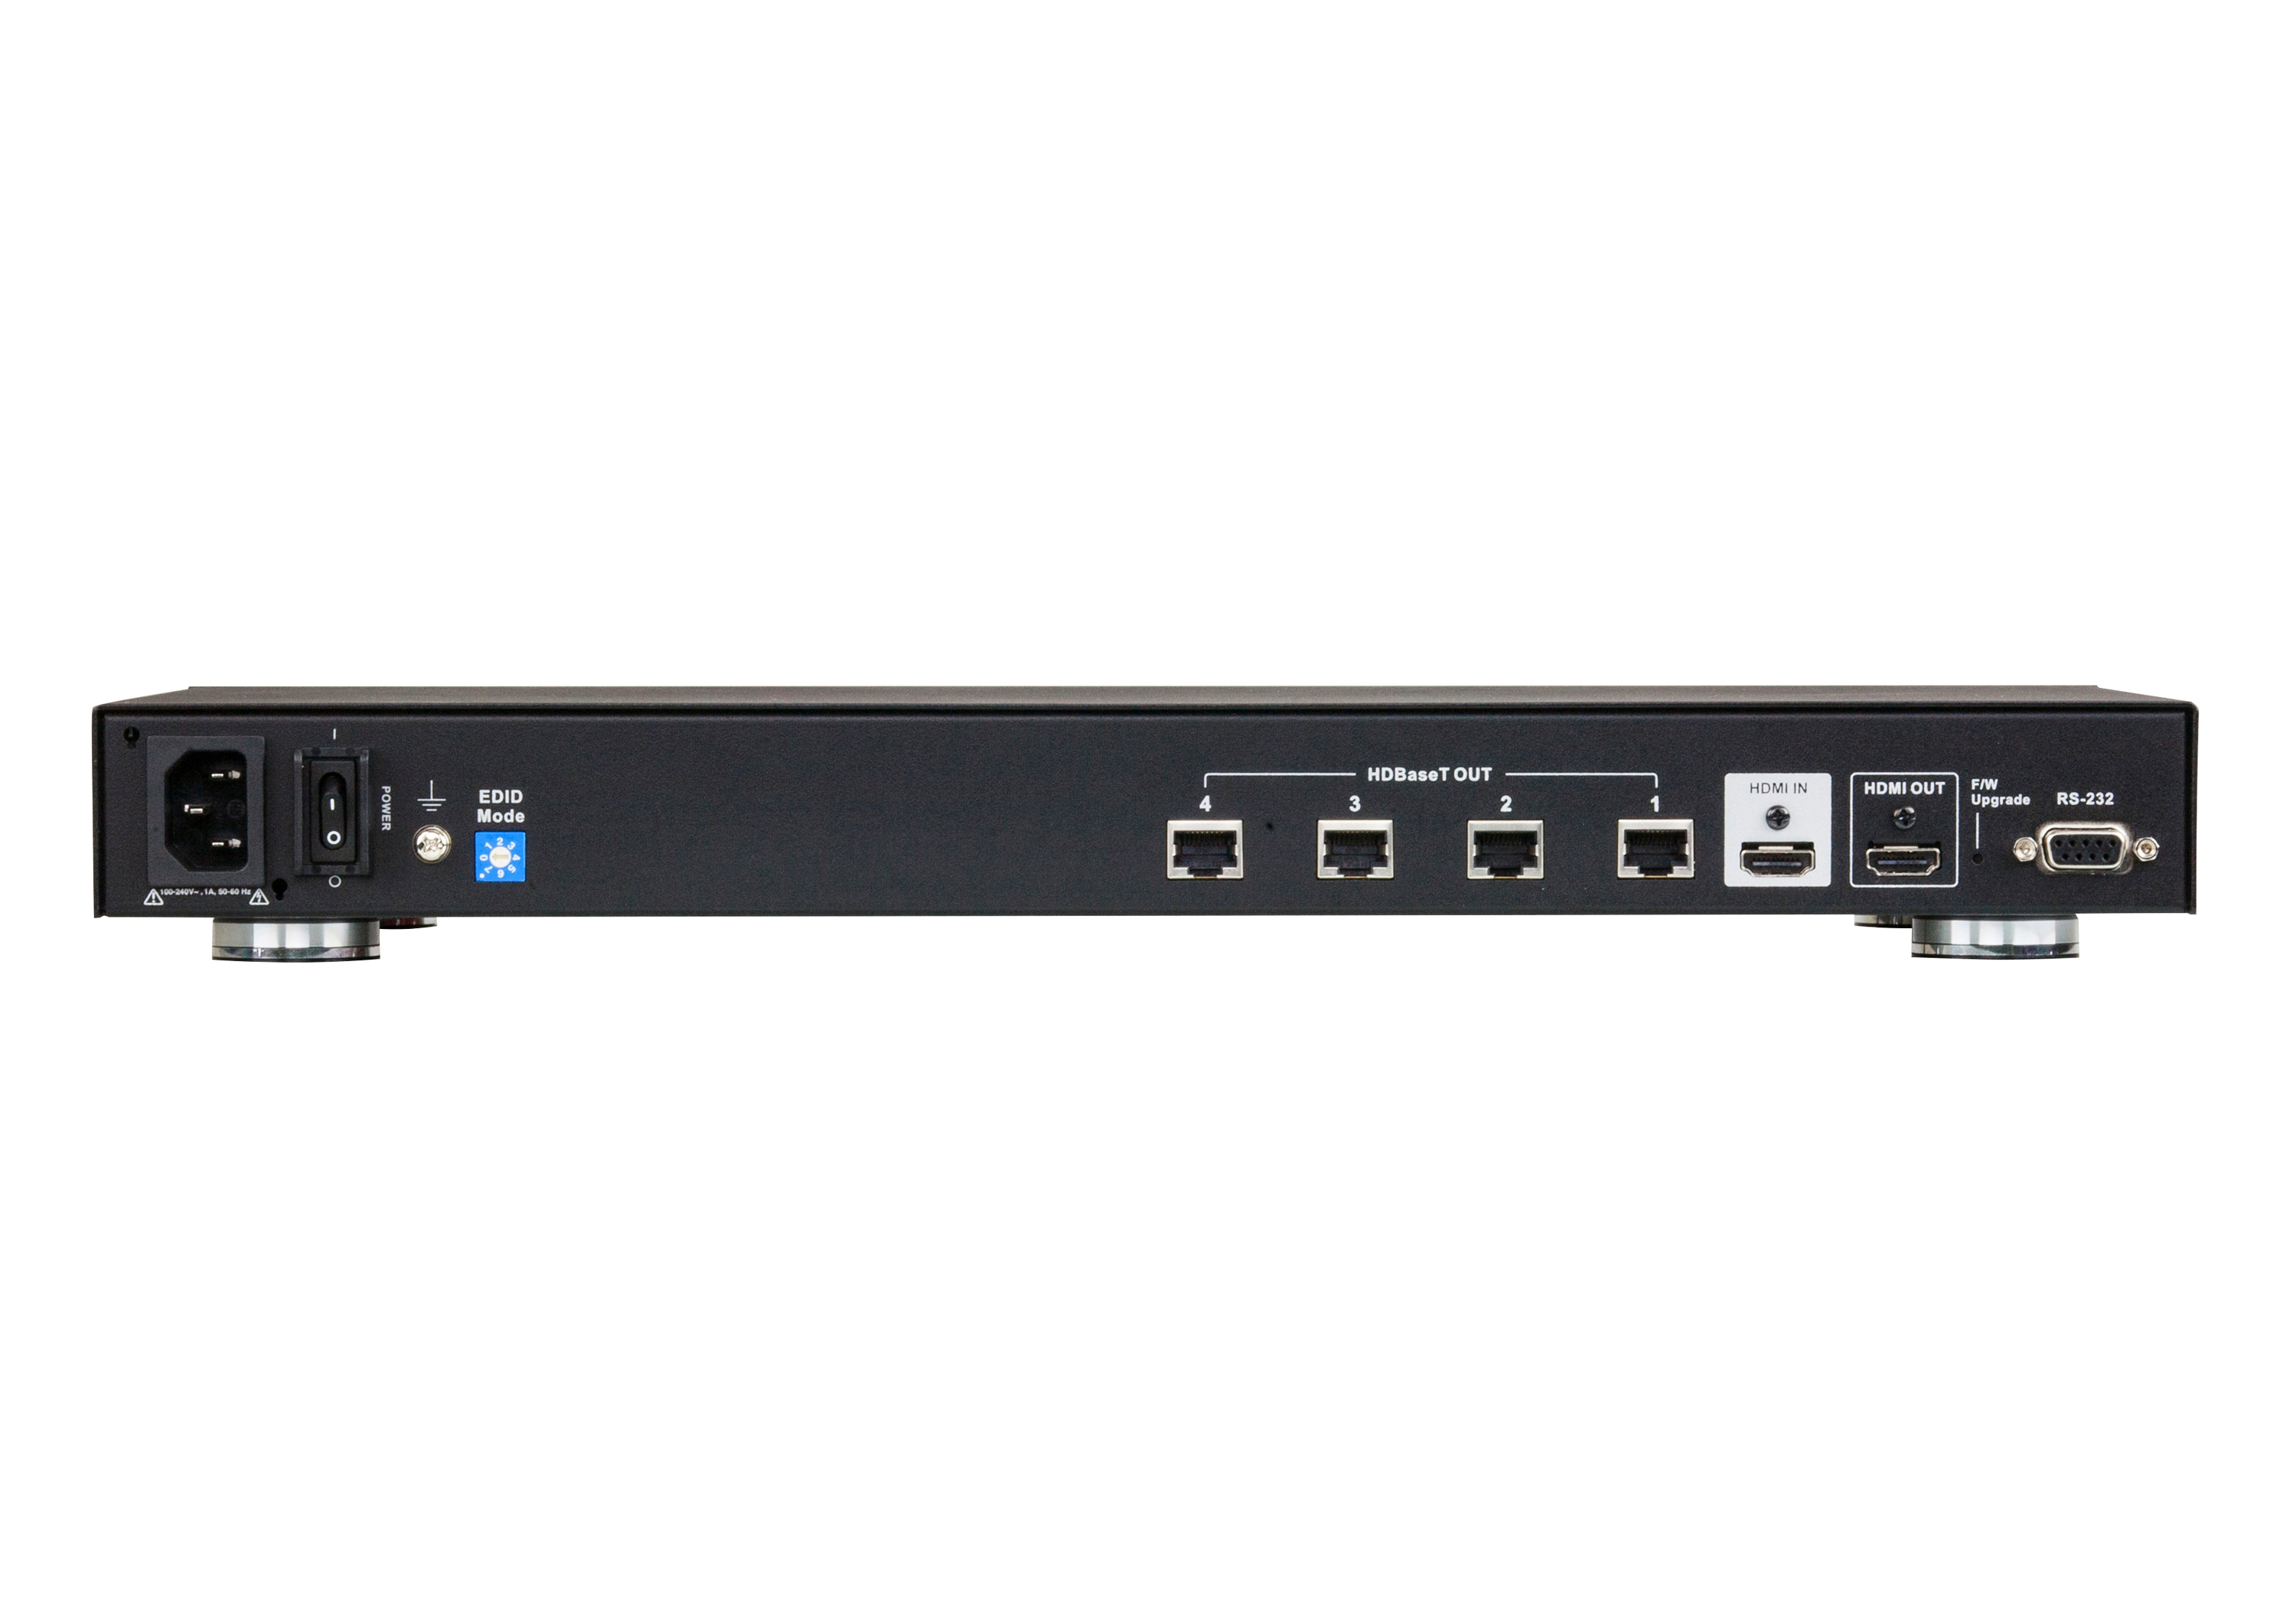 4-Port HDMI HDBaseT Splitter (HDBaseT Class A) - VS1814T